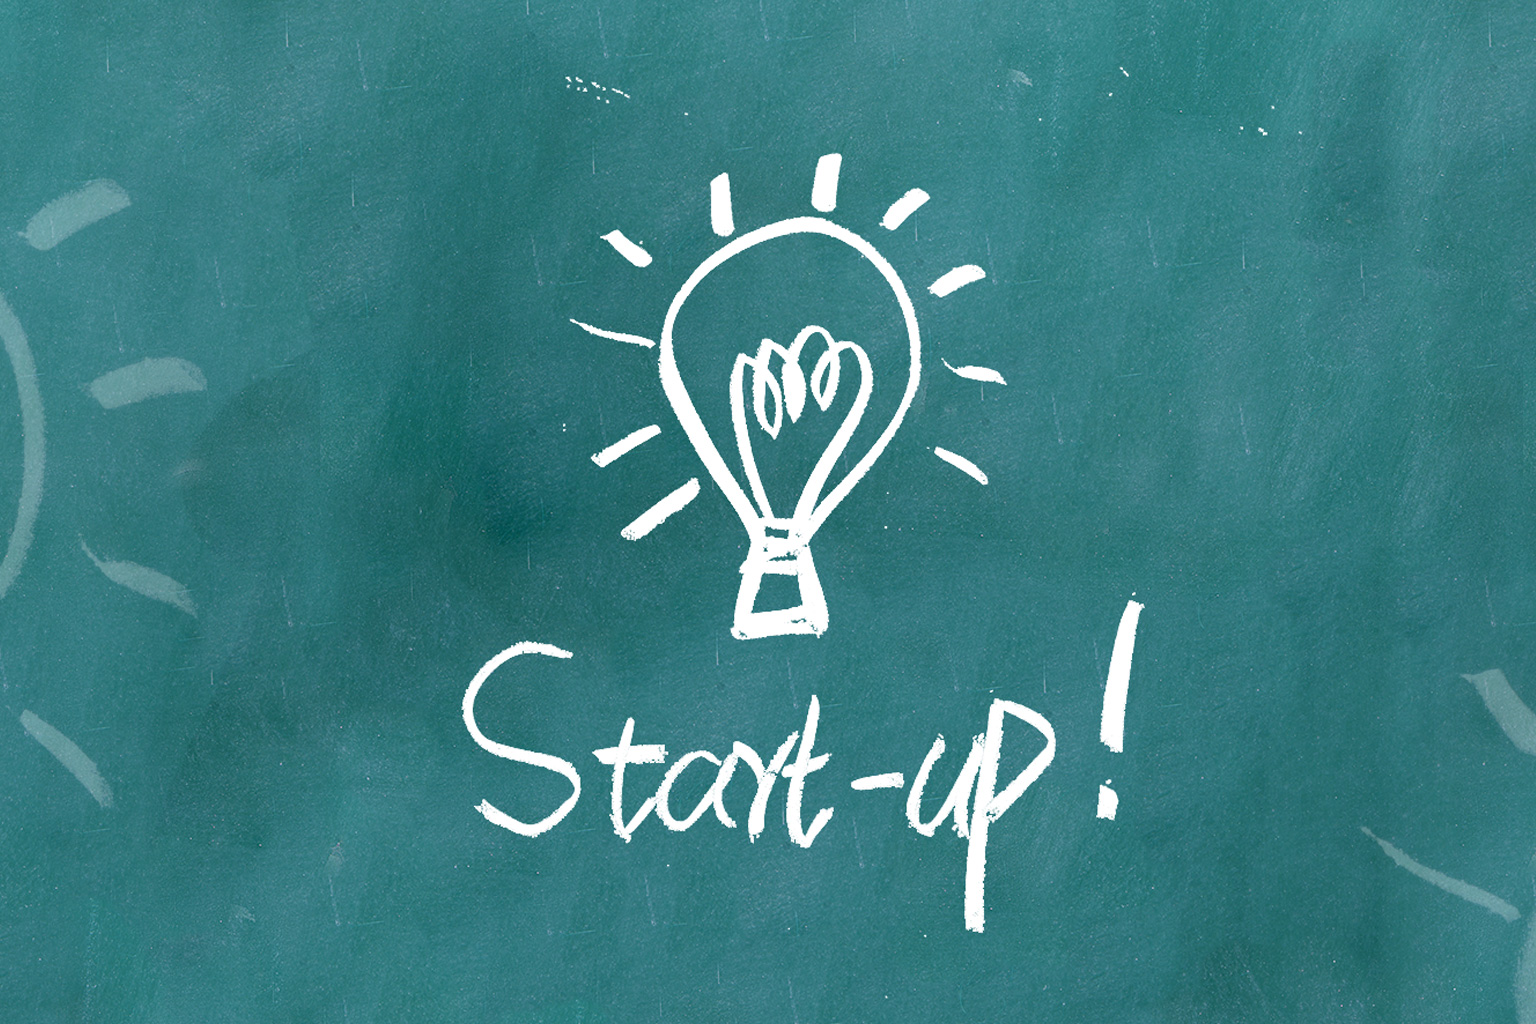 About PEOPLE FOR STARTUP